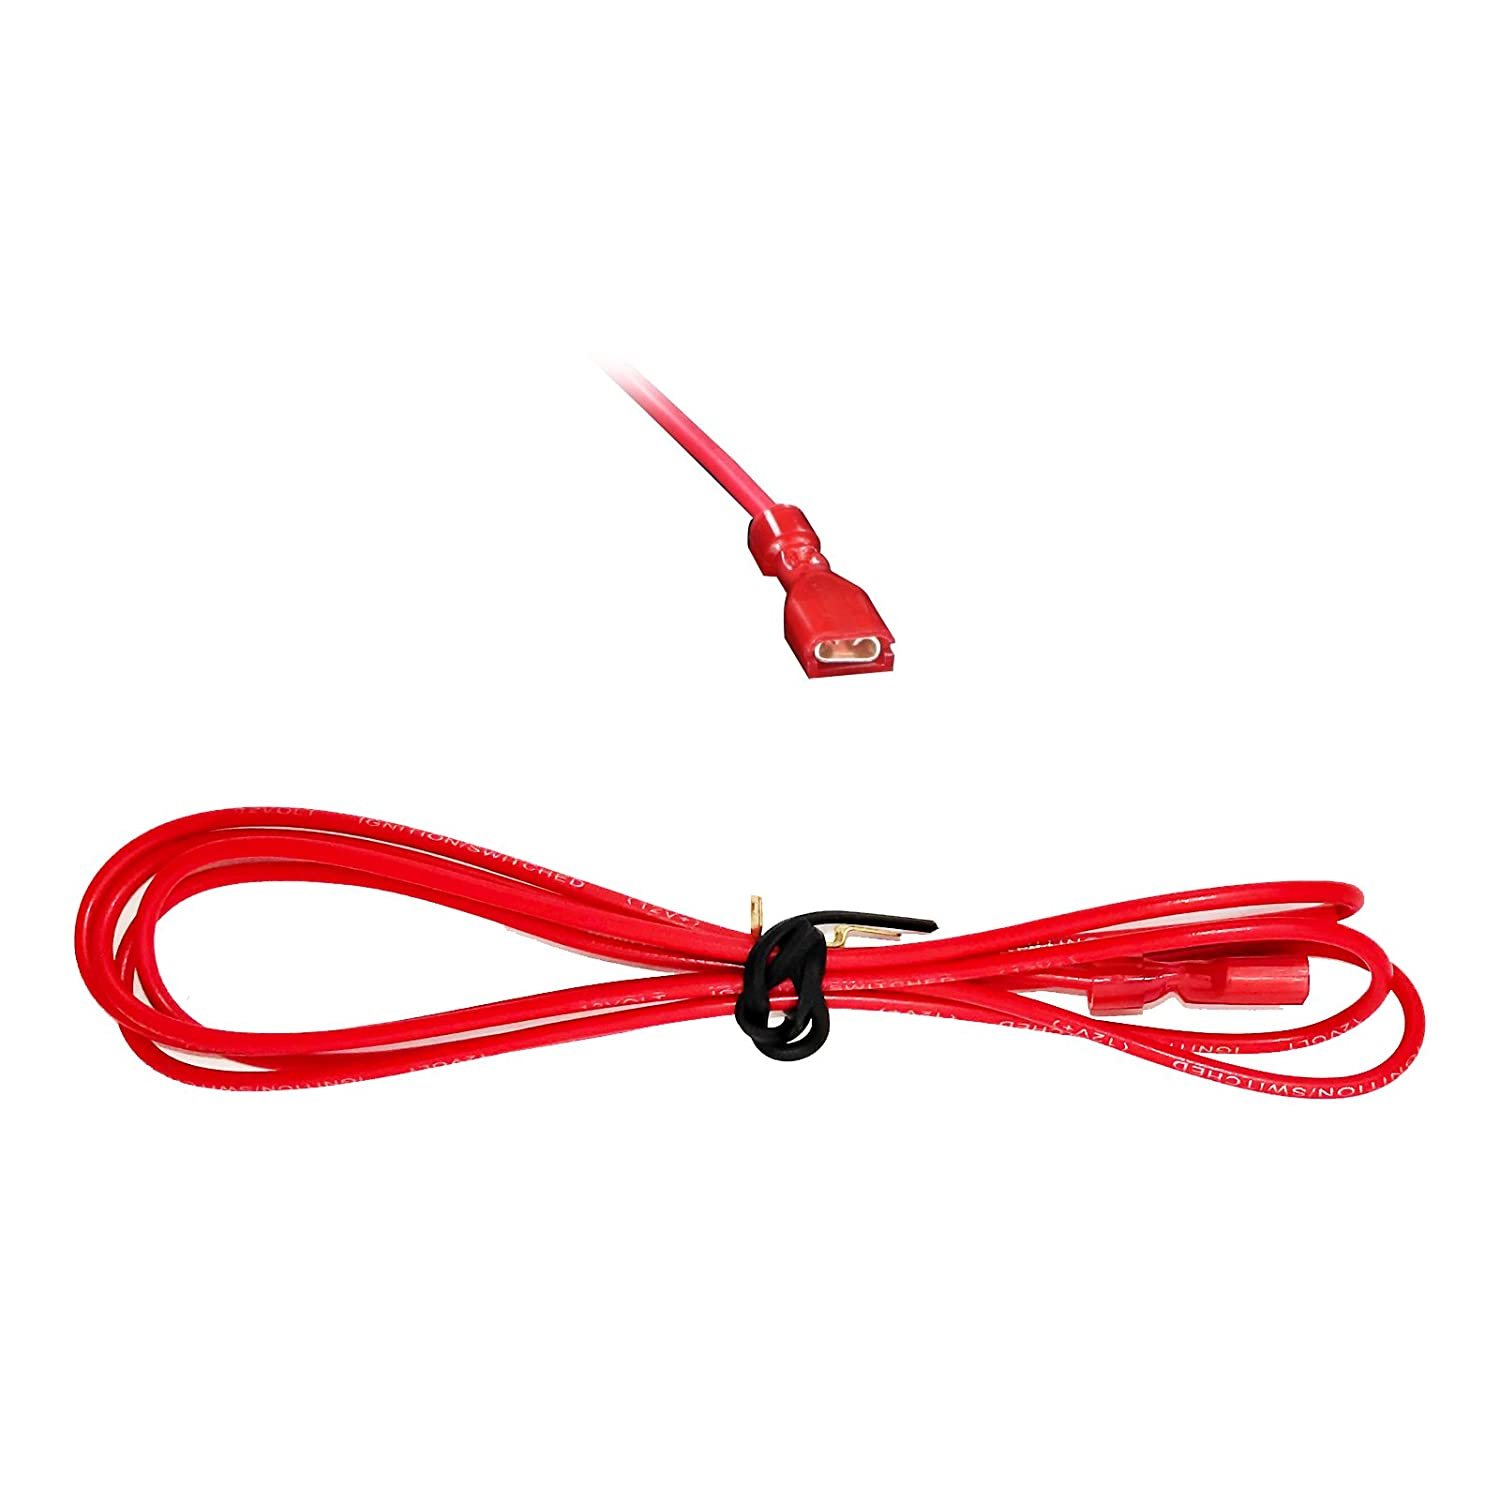 Chevrolet Enrock EGMWH98-08 Wiring Harness for Connection of a Stereo for Select GM Pontiac /& Toyota Vehicles 2000-2008